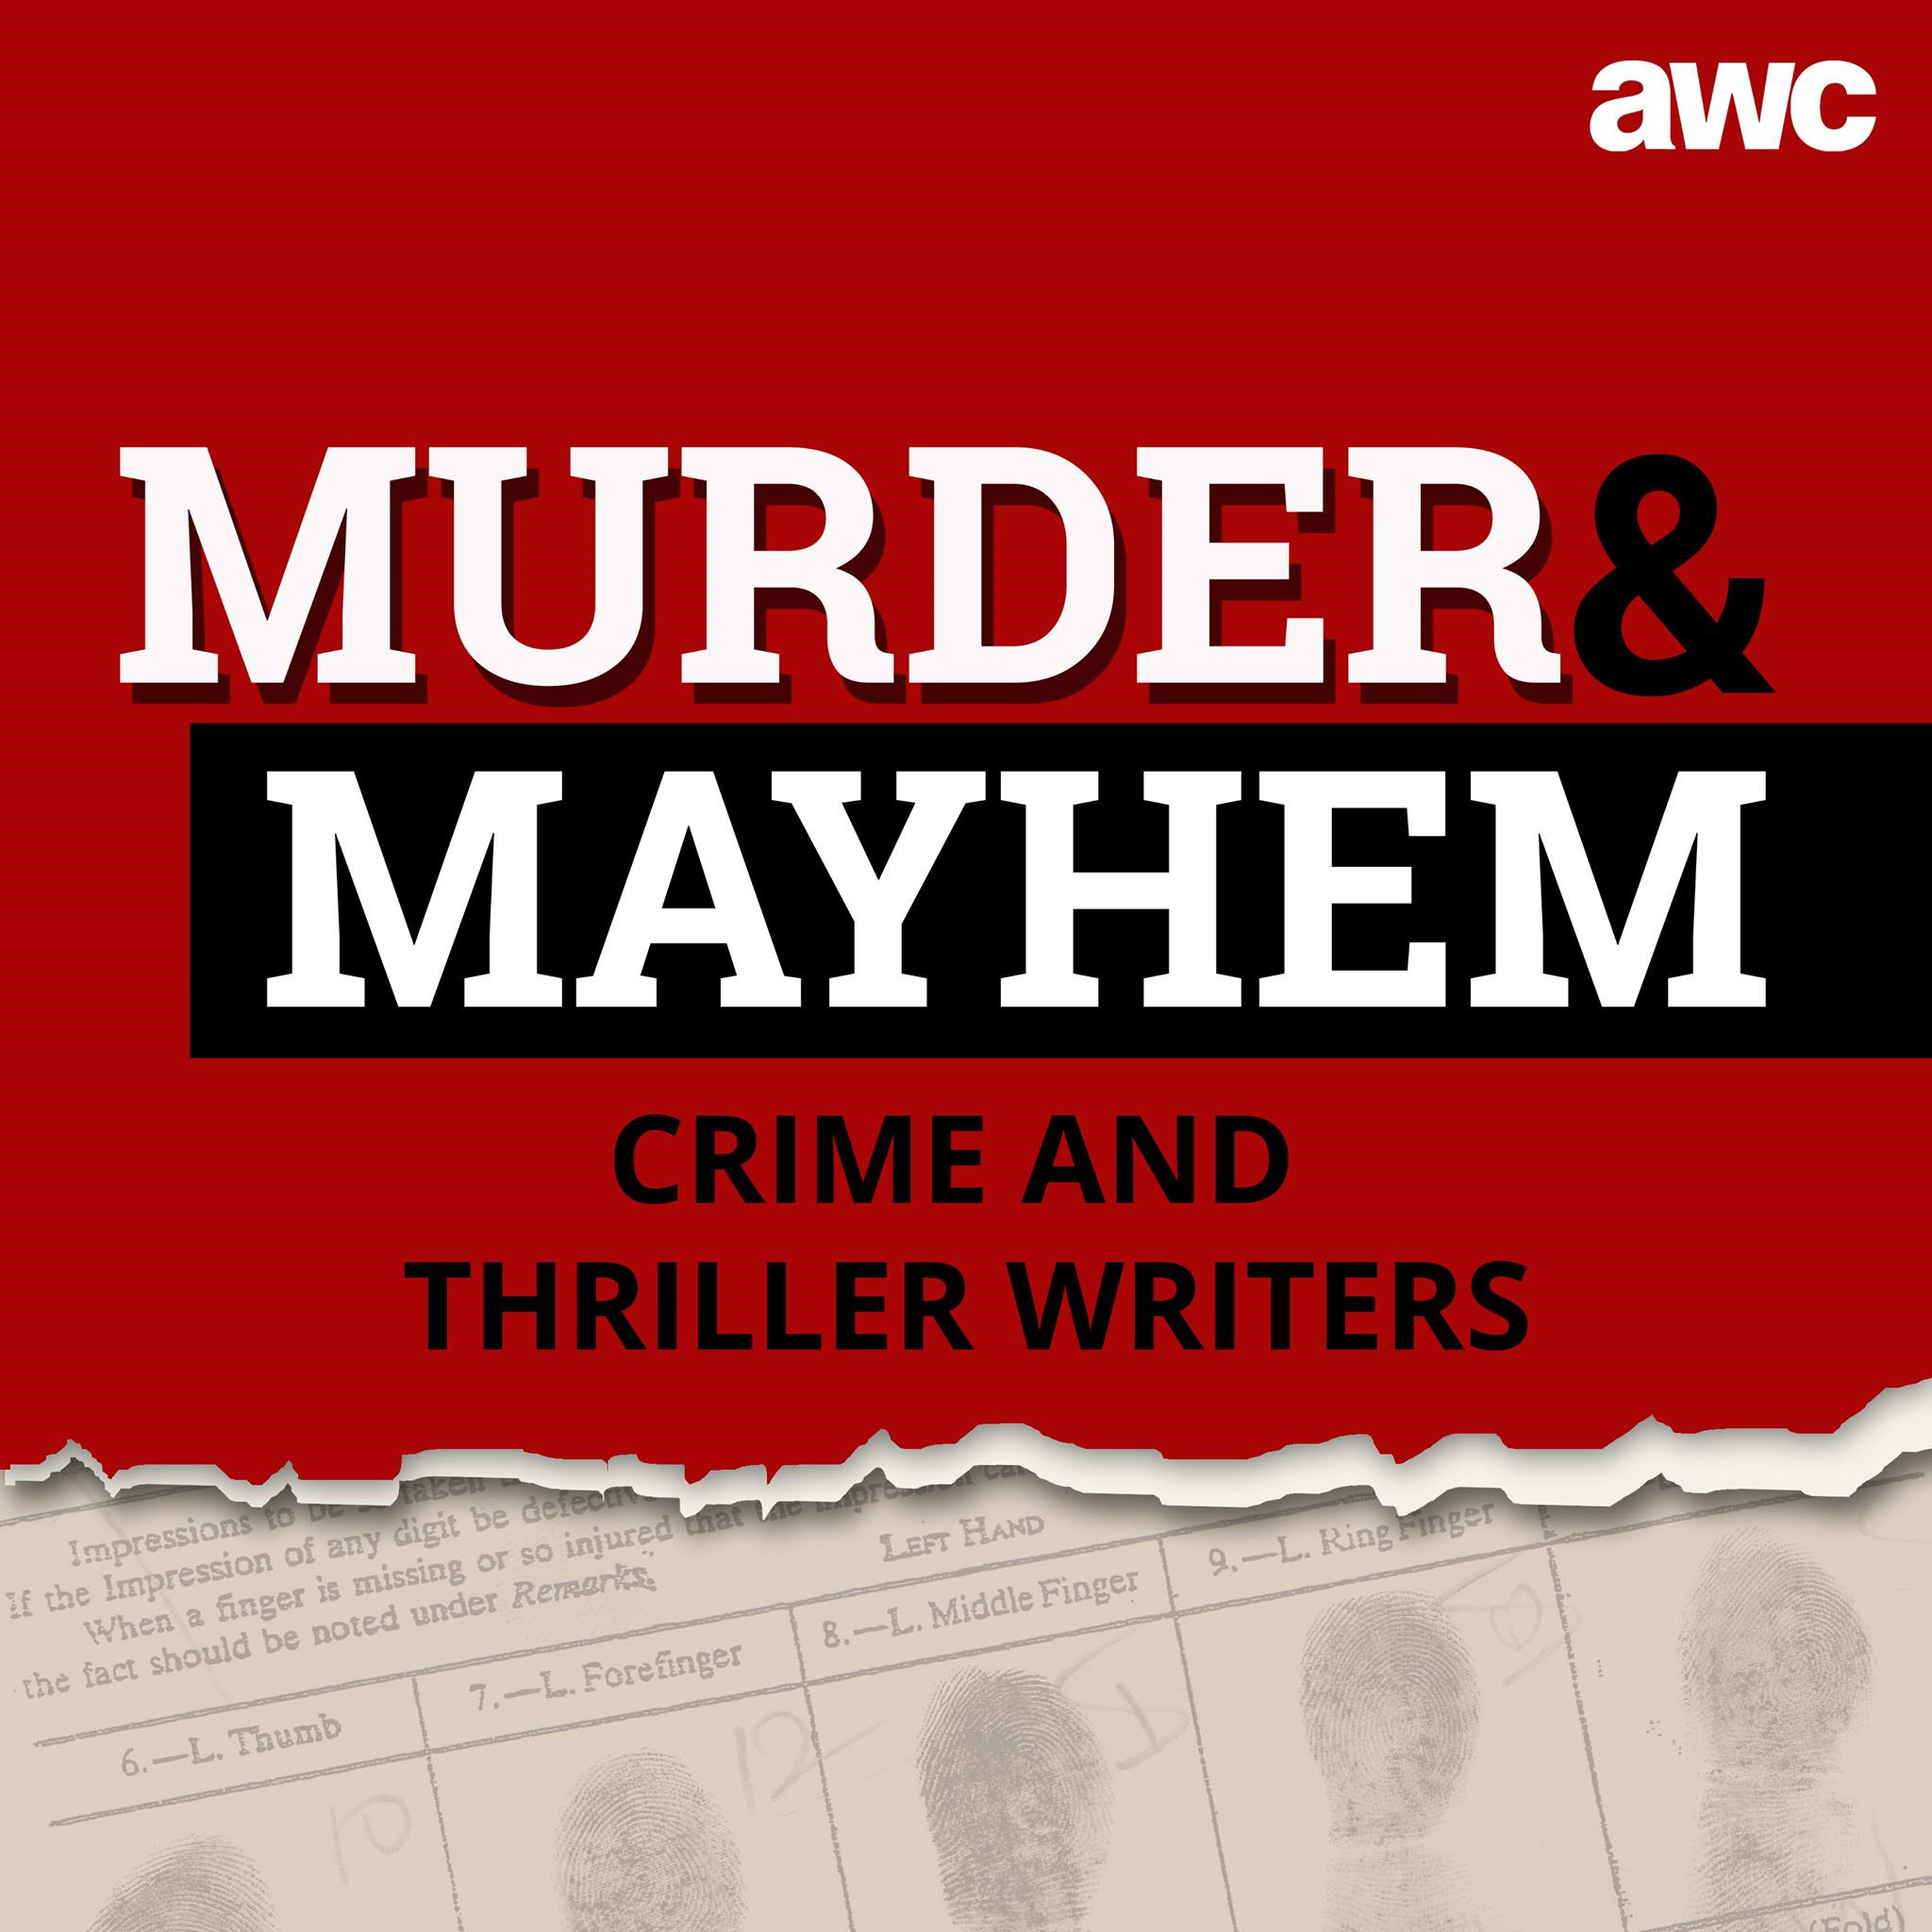 MURDER MAYHEM 29: Liane Moriarty is the only Aussie author to debut at #1 on the NYT bestseller list.  #lianemoriarty